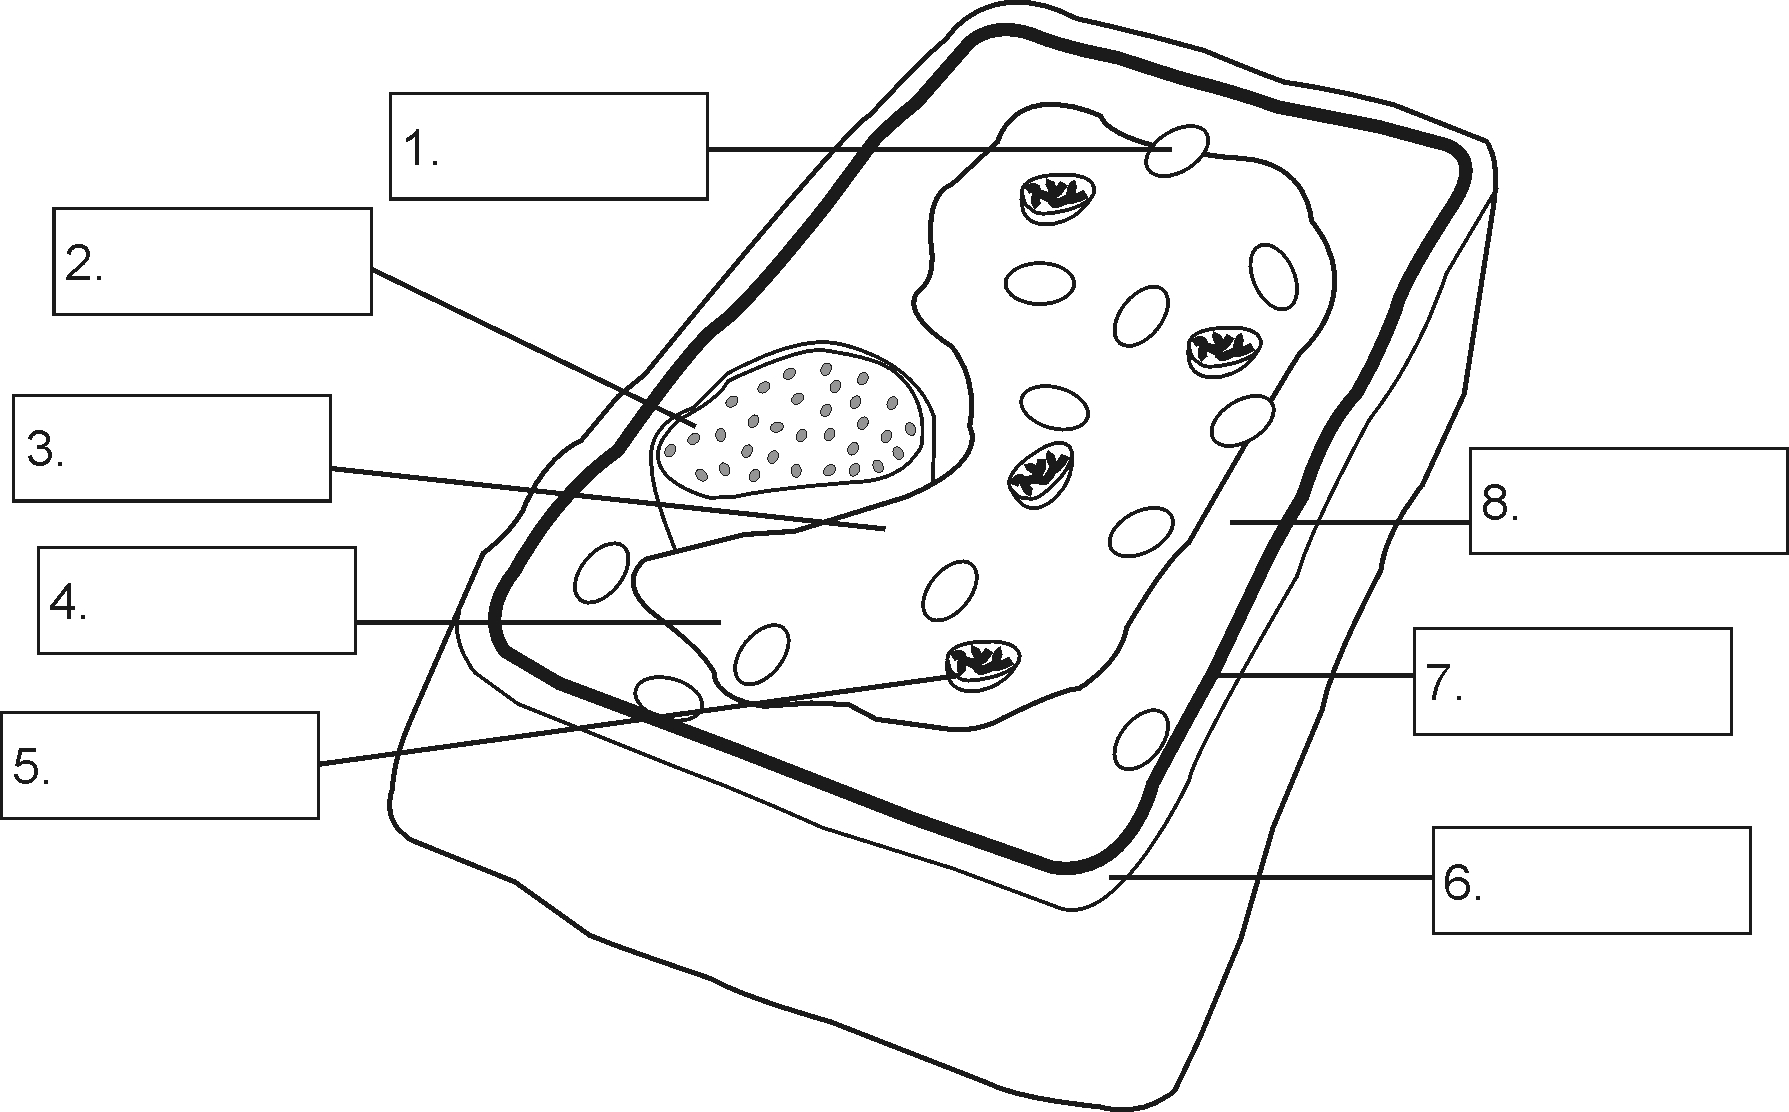 Plant Cell Drawing With Labels At Free For Label Diagram Together Worksheet 1789x1112 Structure Of A